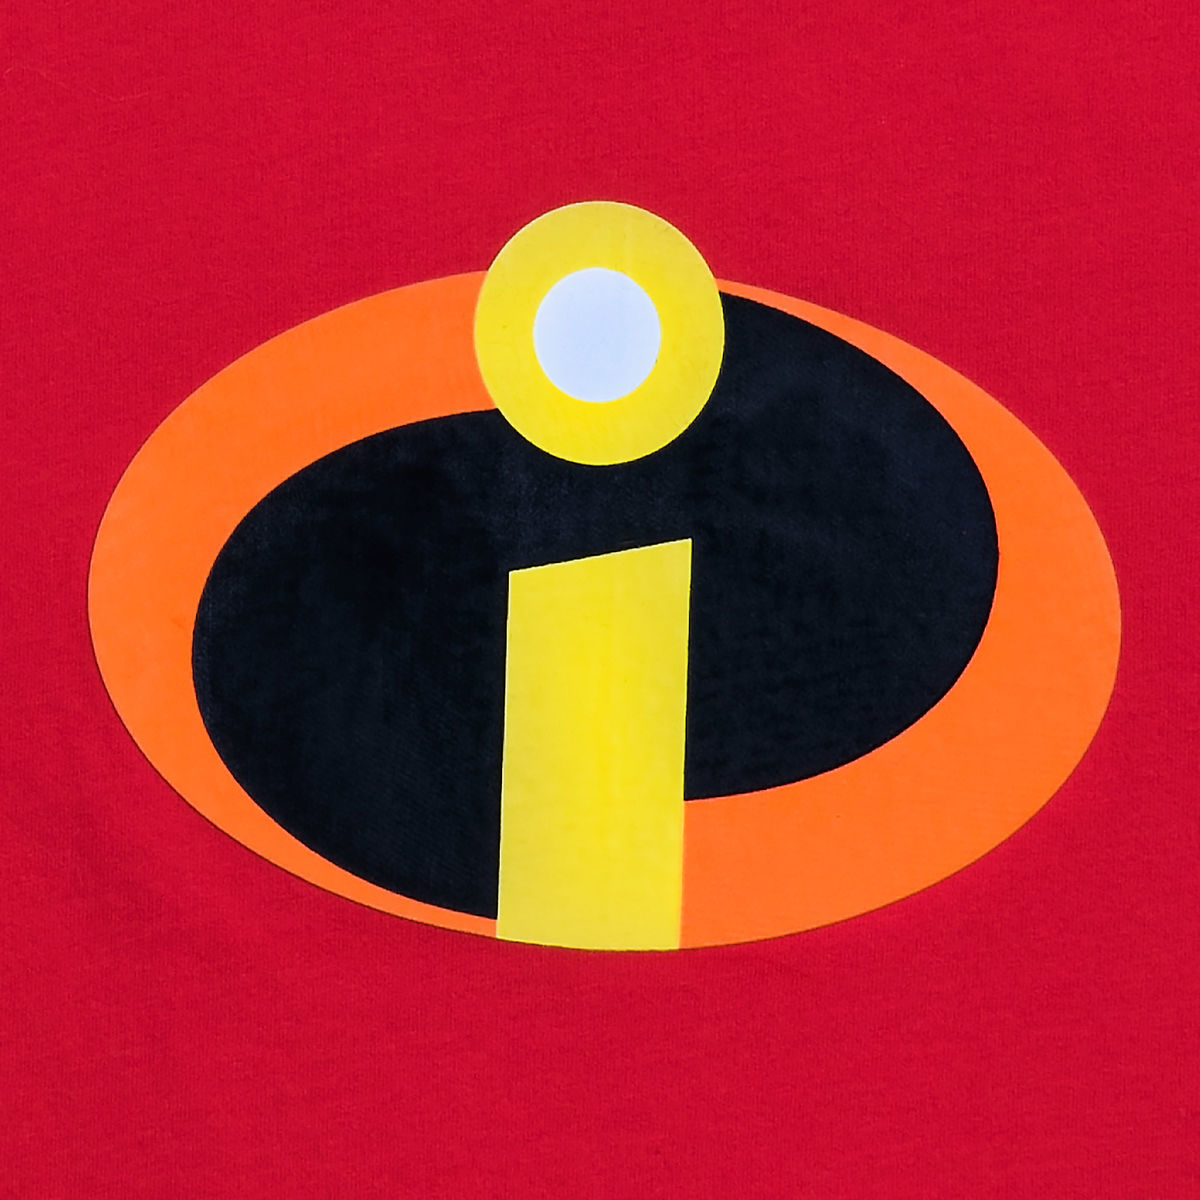 Incredibles 2 came out in theaters on June 15, 2018 after a 12 year gap between movies.